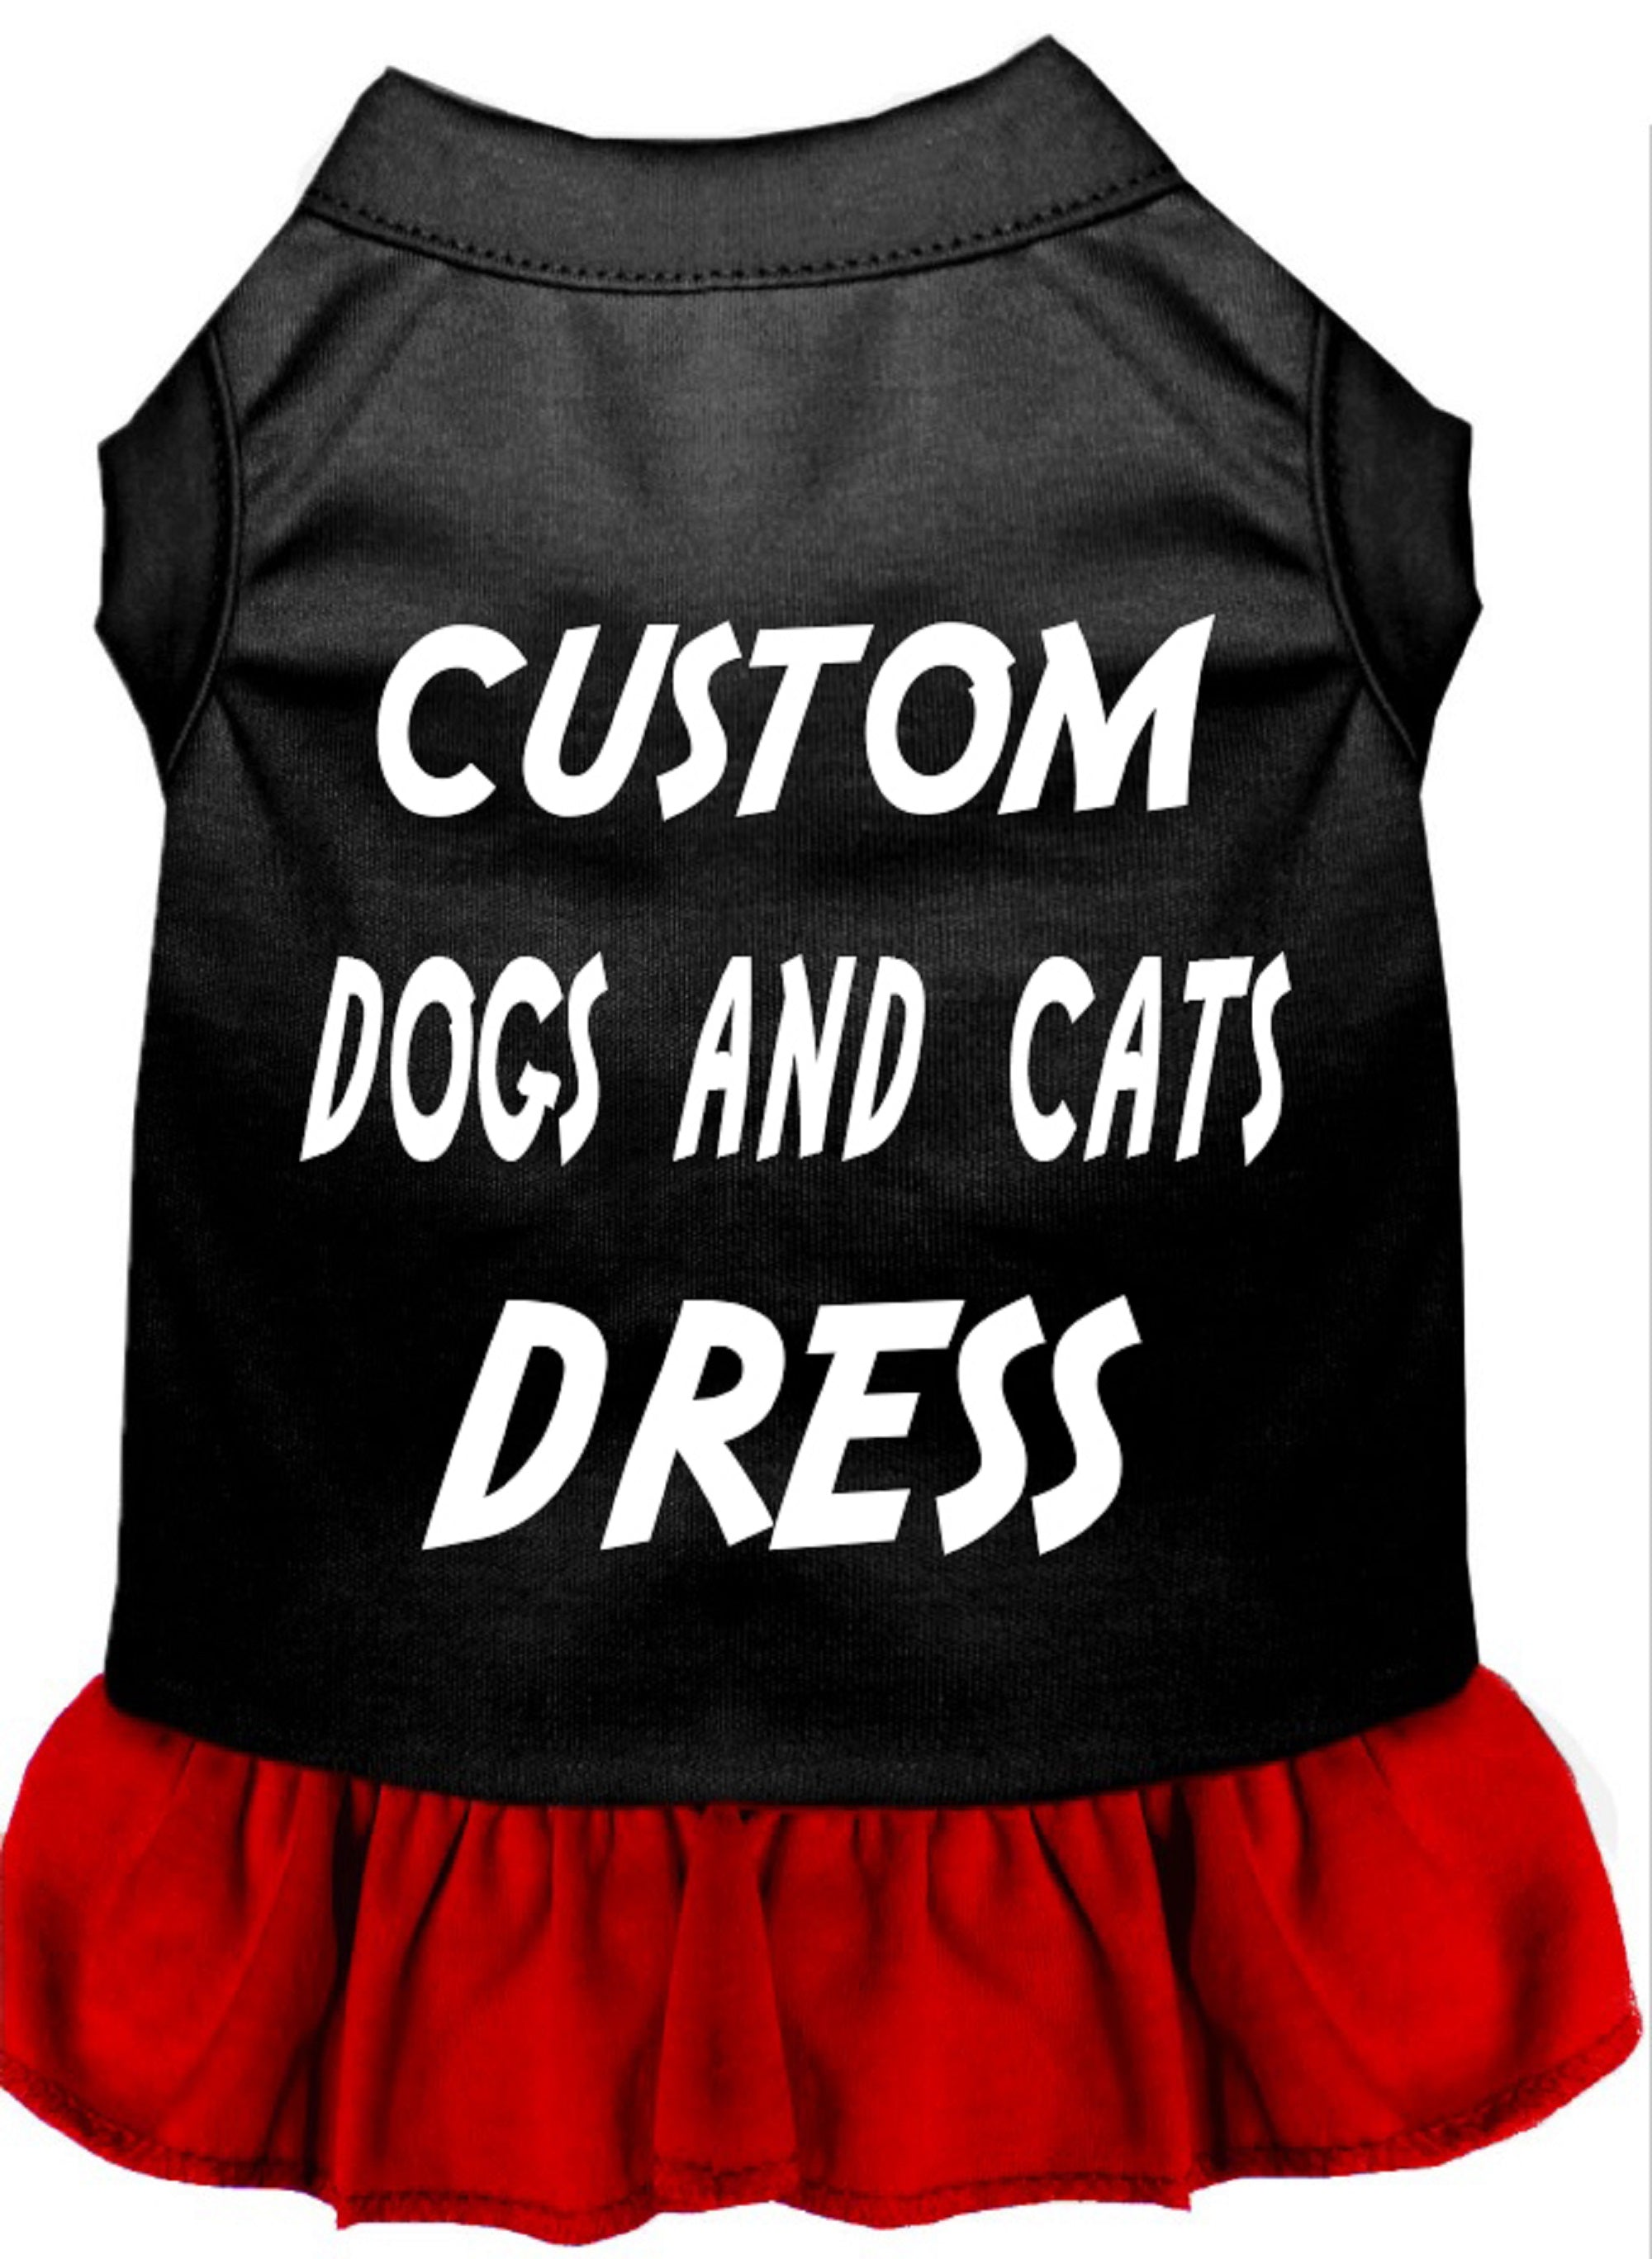 Dogs/Cats Dress